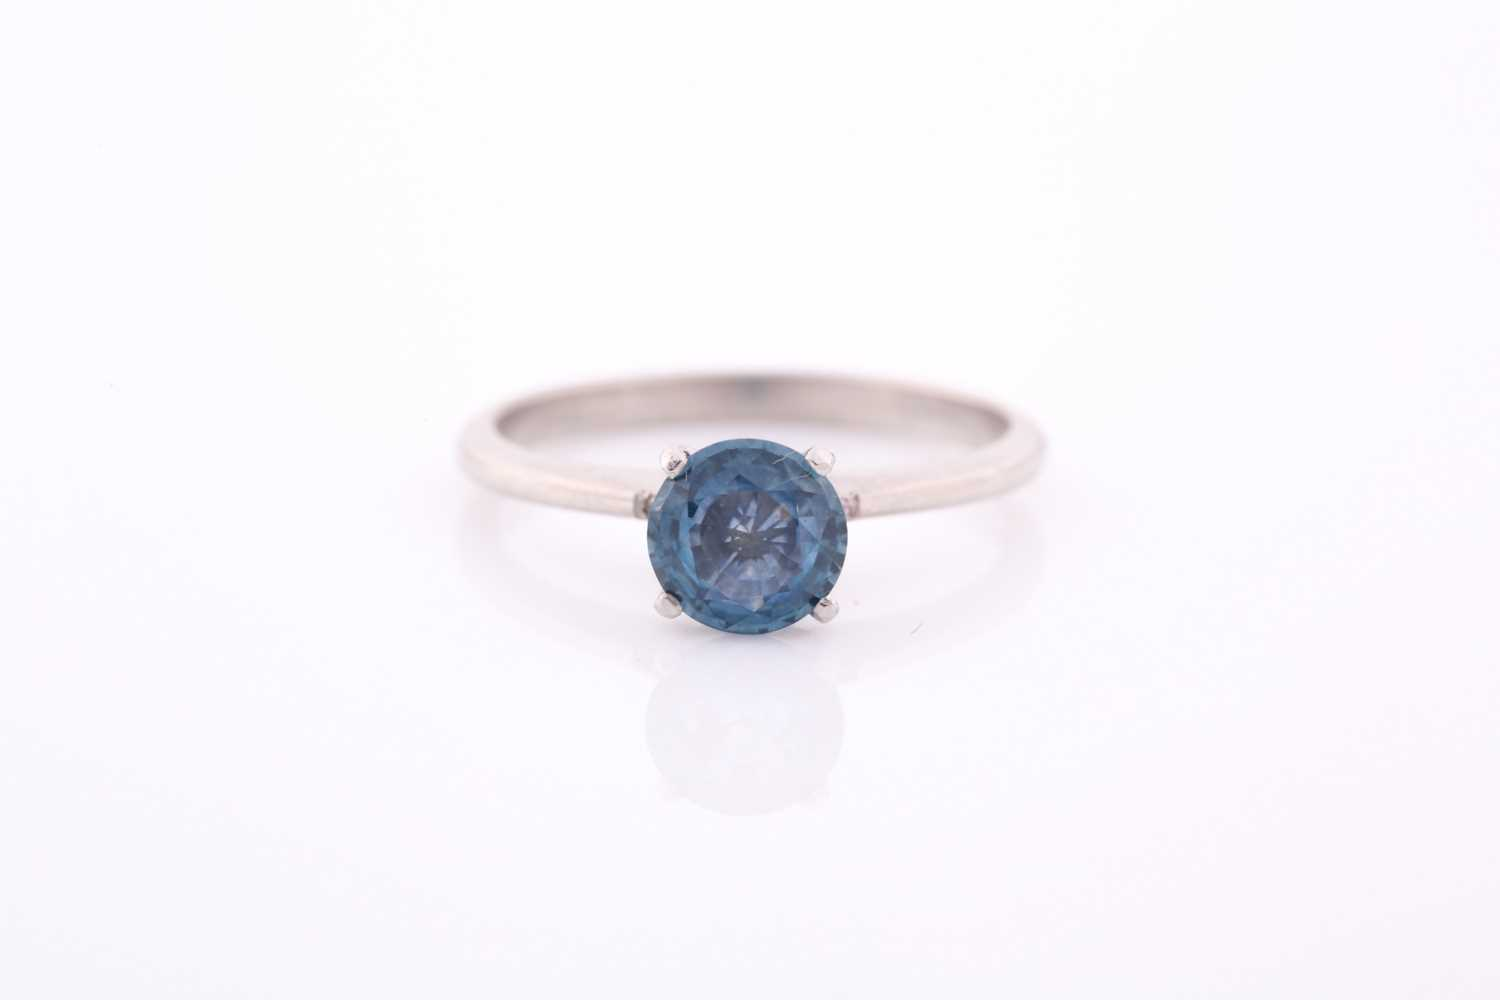 A platinum and solitaire sapphire ring, set with a mixed round-cut blue sapphire of approximately